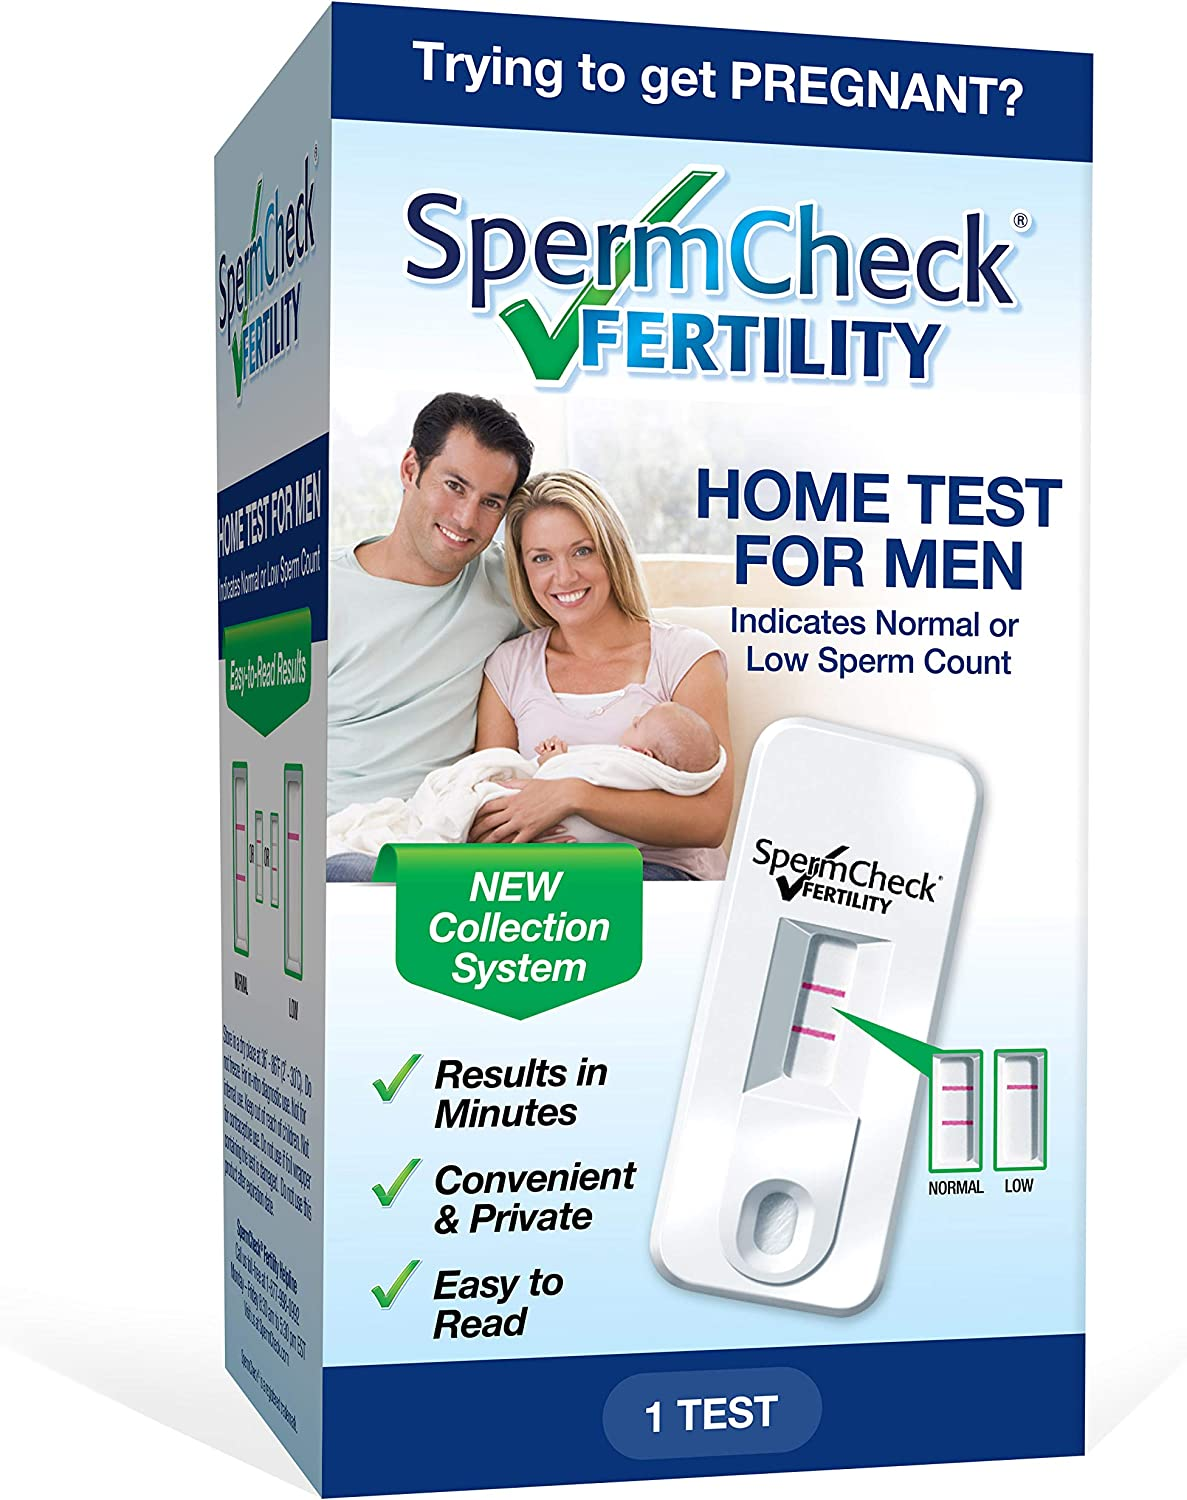 Spermcheck Fertility Home Test Kit For Men Shows Normal Or Low Sperm Count Easy To Read Results Convenient Accurate Private